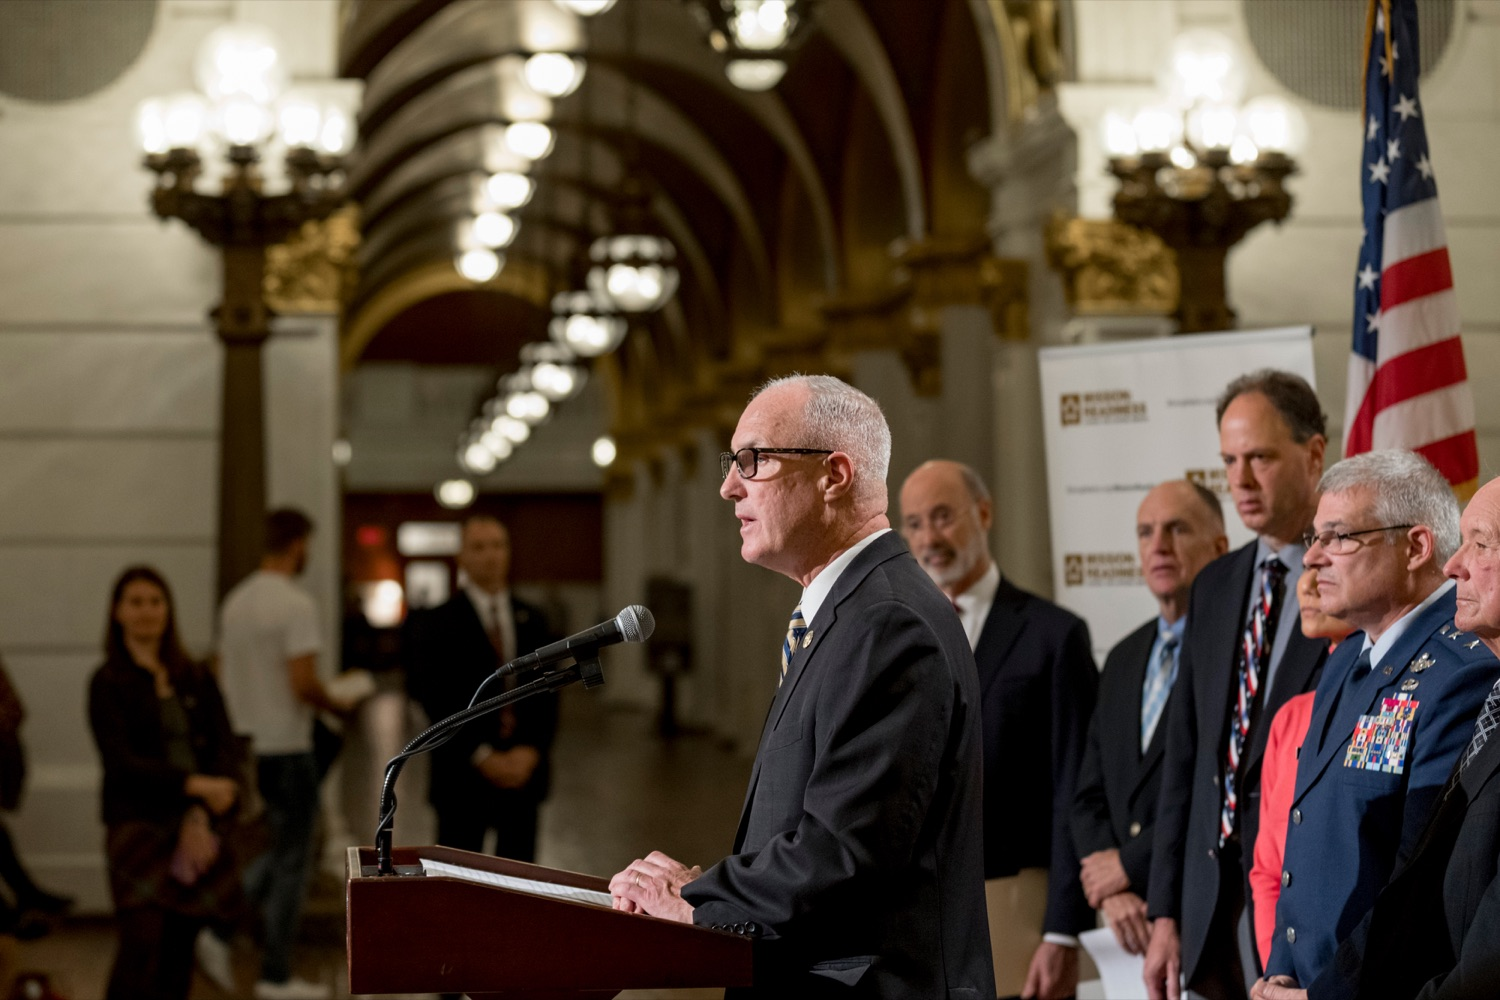 """<a href=""""https://filesource.wostreaming.net/commonwealthofpa/photo/17588_GOV_Mission_Readiness_NK_014.JPG"""" target=""""_blank"""">⇣Download Photo<br></a>State Rep. Tom Murt speaks during a press conference outlining how competition for qualified individuals among all employment sectors affects military recruiting efforts and warrants greater investment in our next generation inside the Capitol Rotunda on Tuesday, November 12, 2019."""